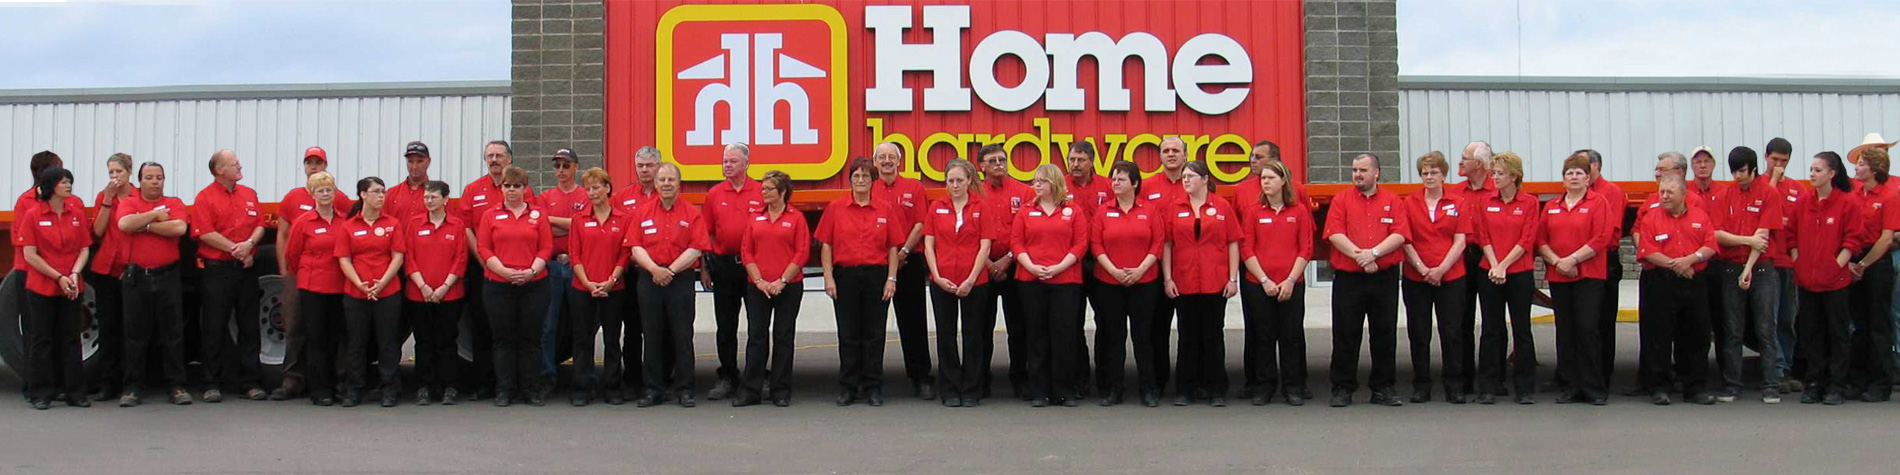 Group of Home Hardware Employees